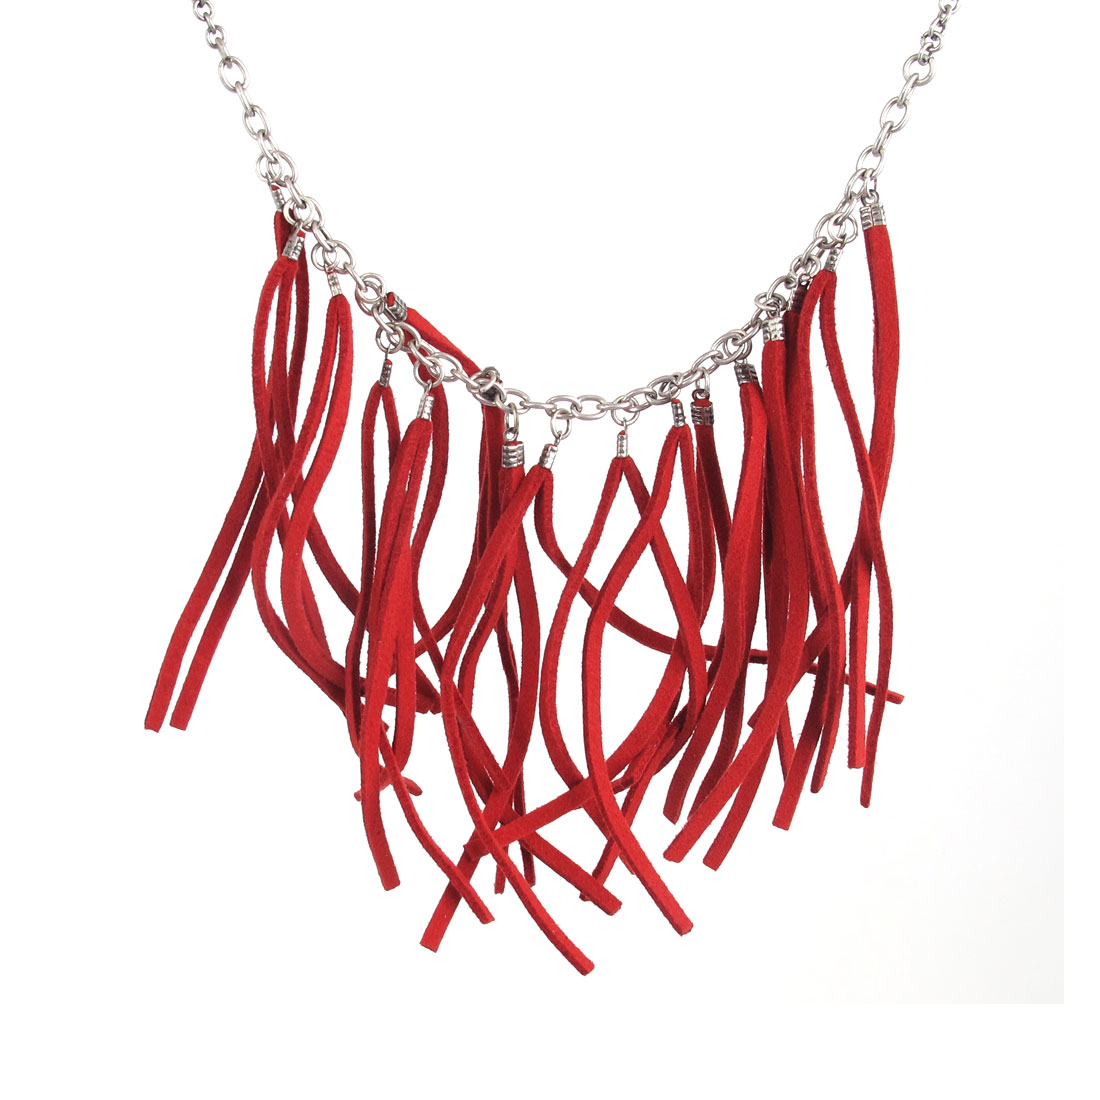 Ladies Dark Red Nylon String Design Pendant Metal Chain Necklace Neckwear Collar Silver Tone 80CM Girth